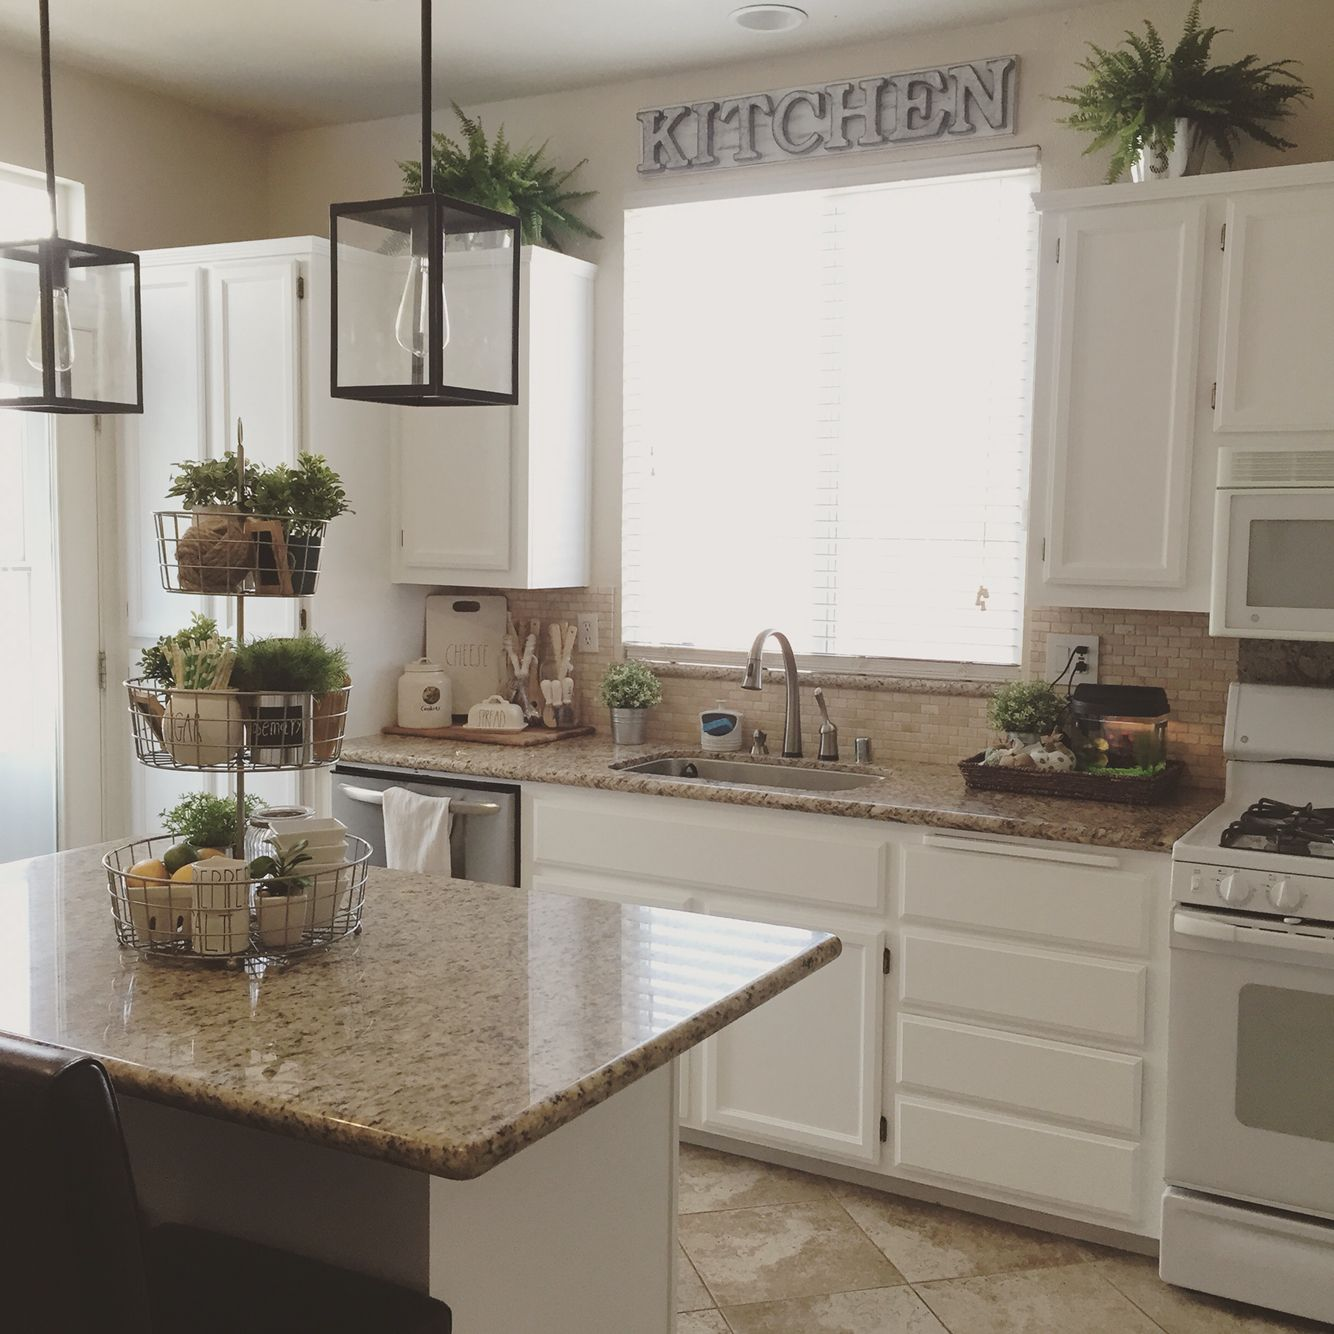 18 Ideas For Decorating Above Kitchen Cabinets: Farmhouse Kitchen. In 2019